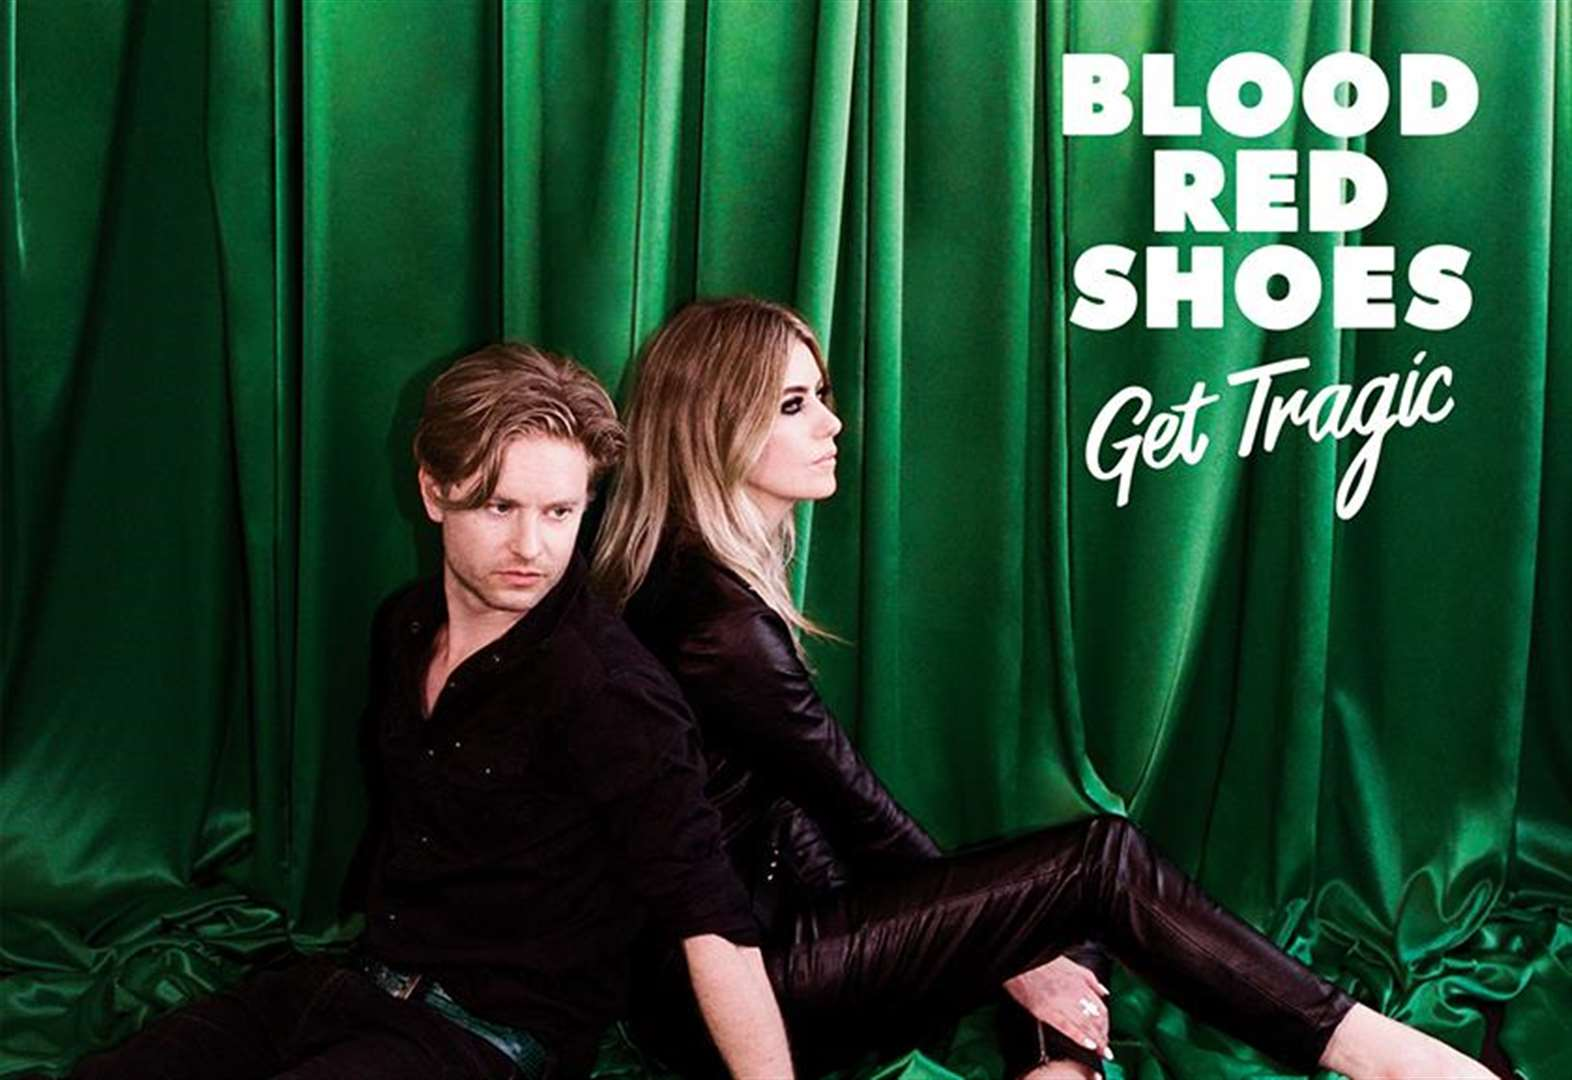 ALBUM REVIEW: Get Tragic - Blood Red Shoes